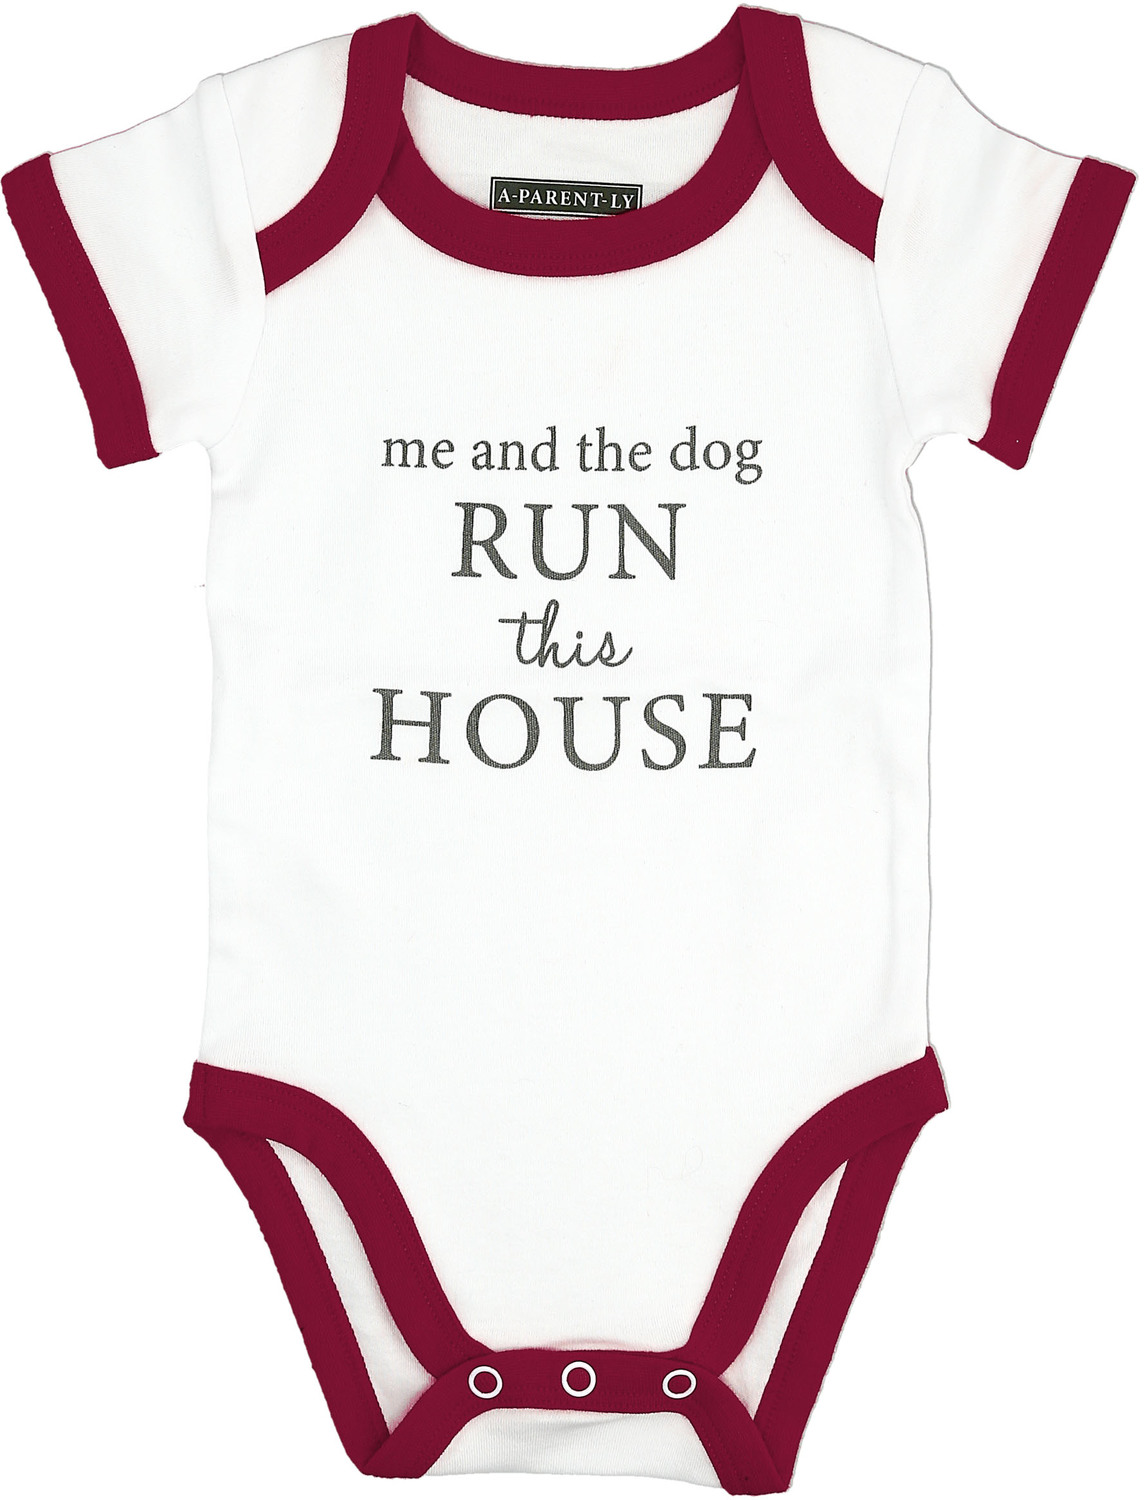 Run The House by A-Parent-ly - Run The House - 12-24 Months Burgundy Trimmed Bodysuit